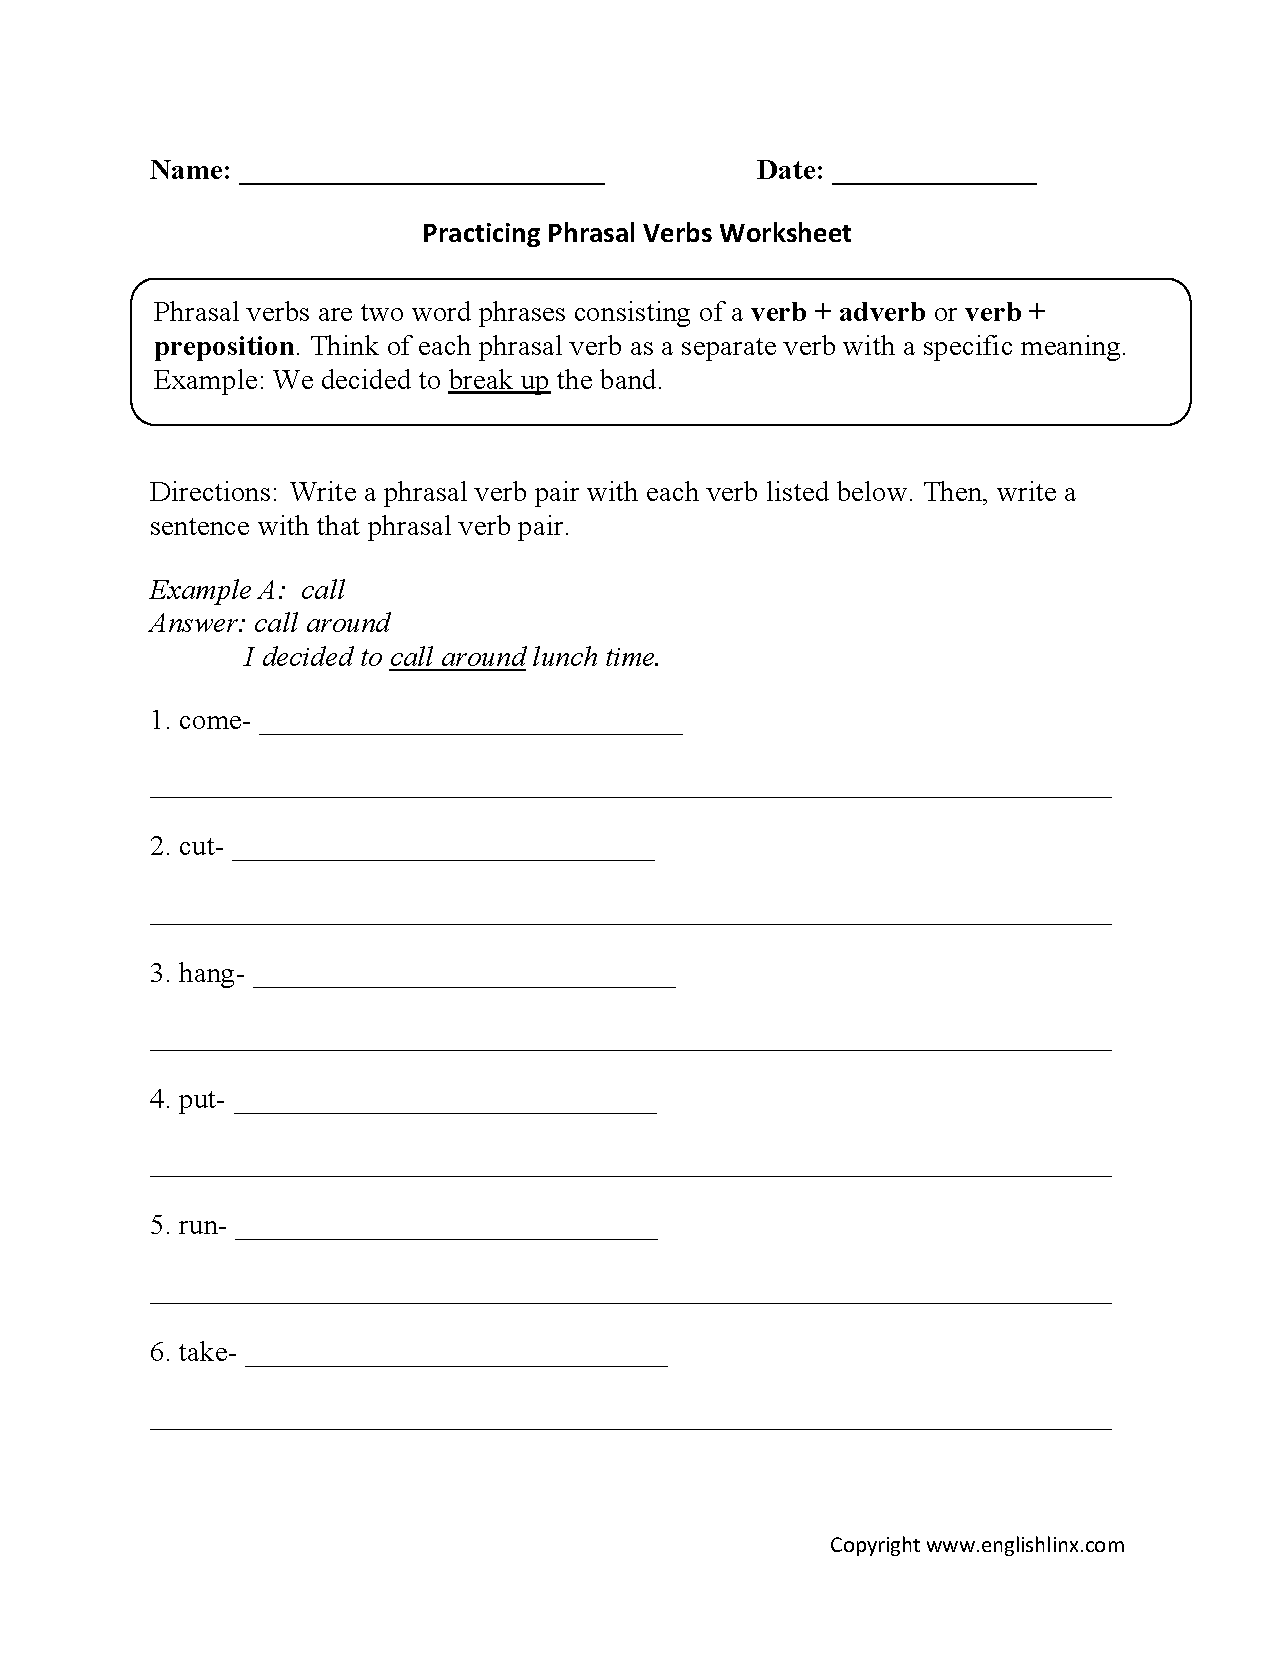 Practicing Phrasal Verbs Worksheet